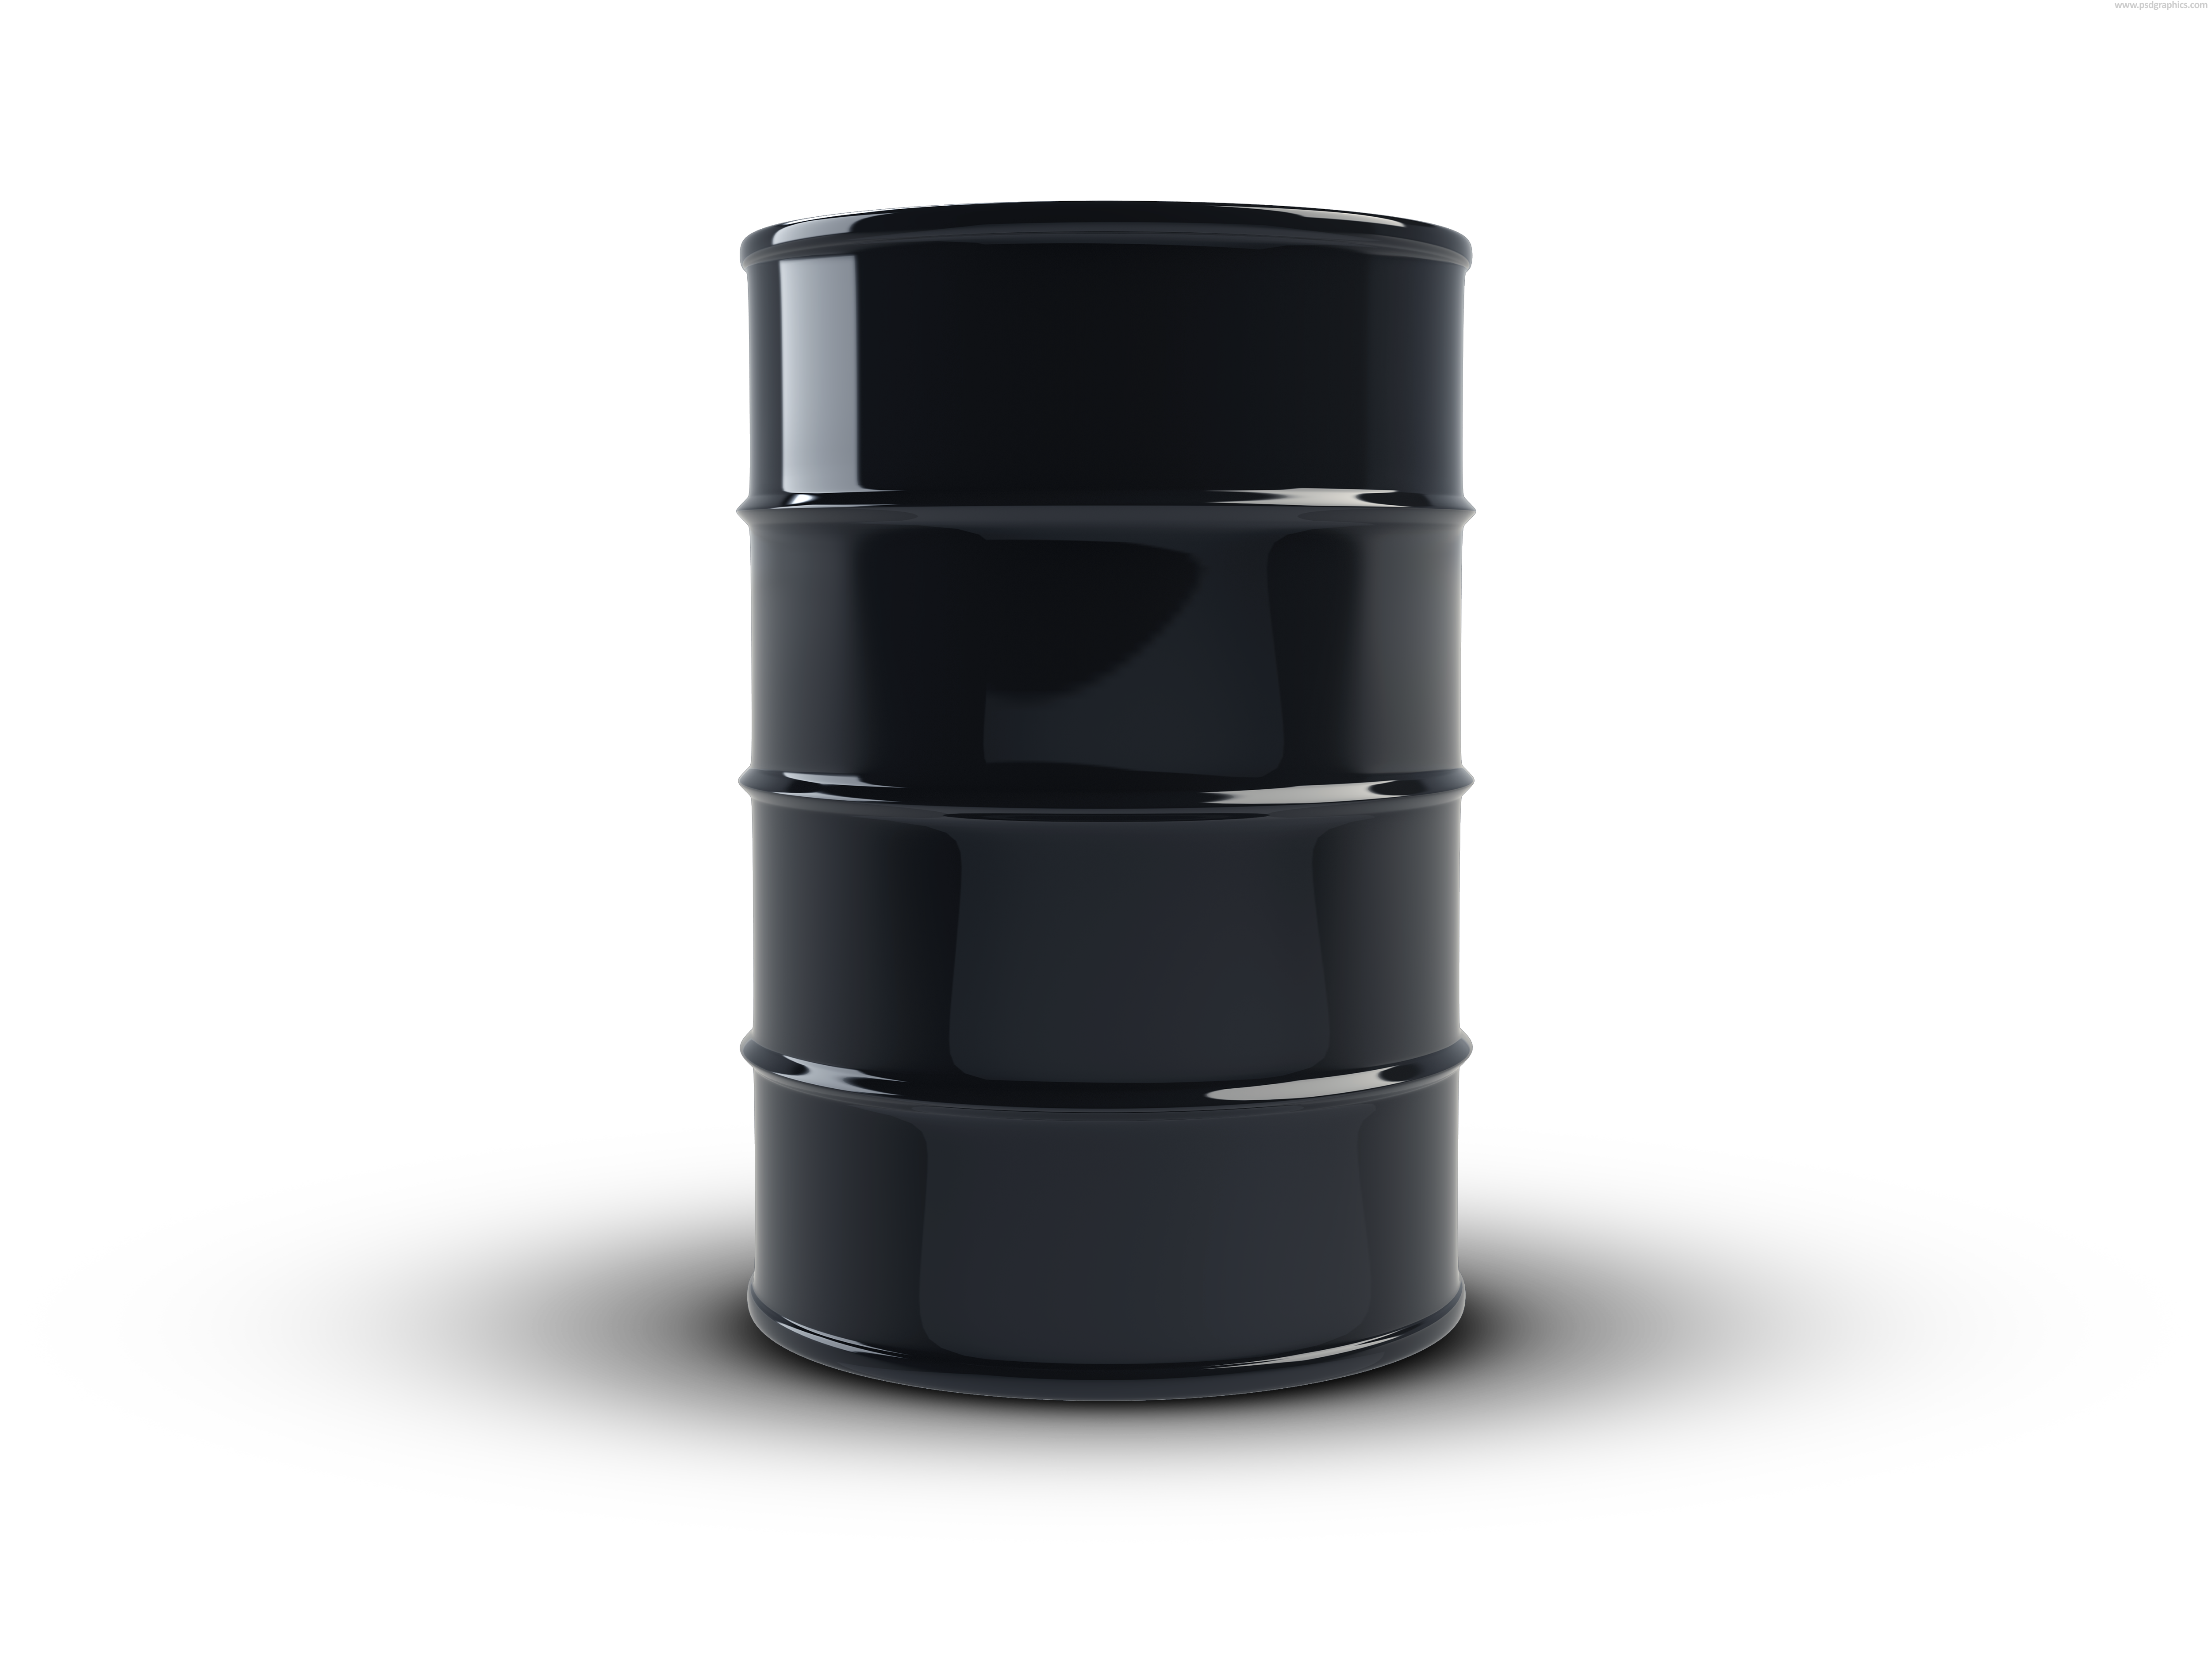 Oil clipart petroleum barrel. High resolution png free